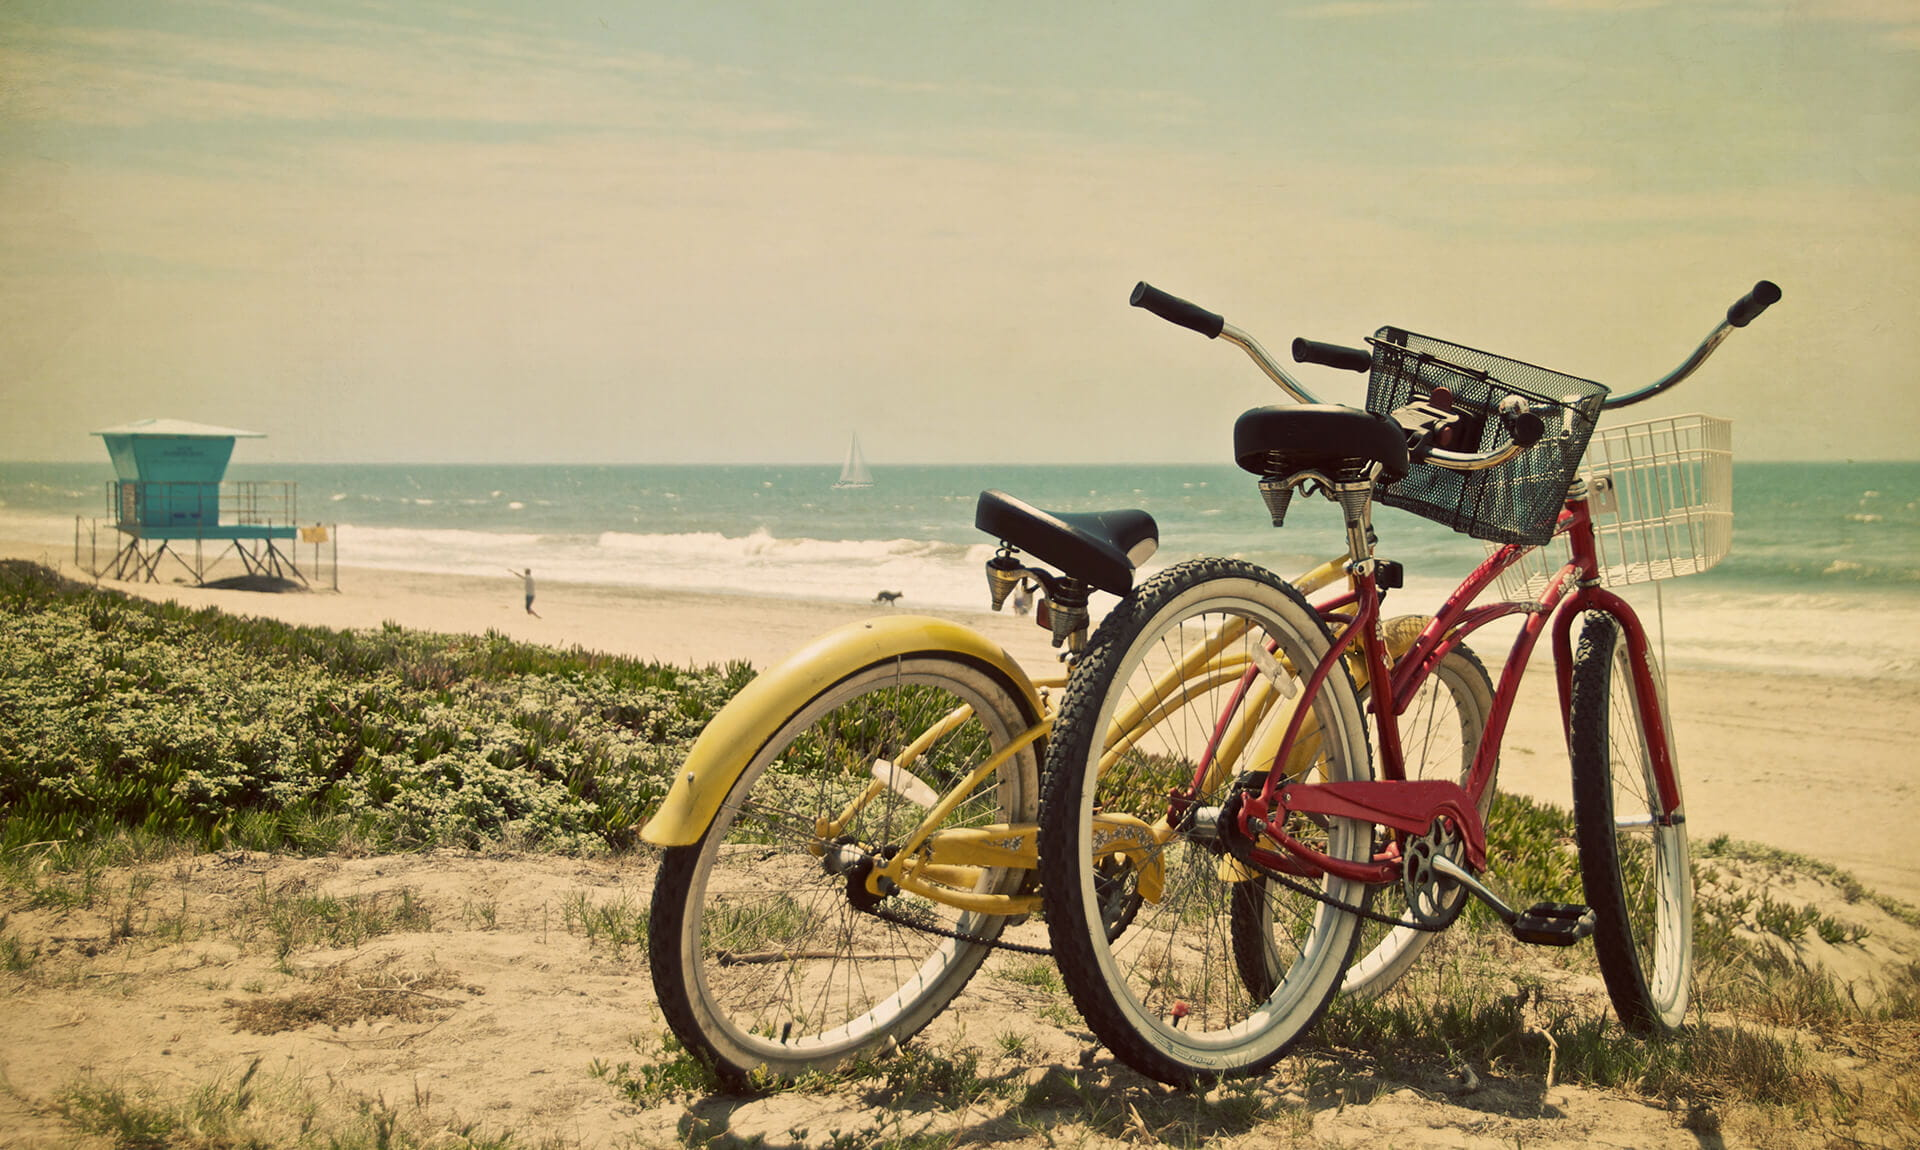 Yellow and red bikes on sand